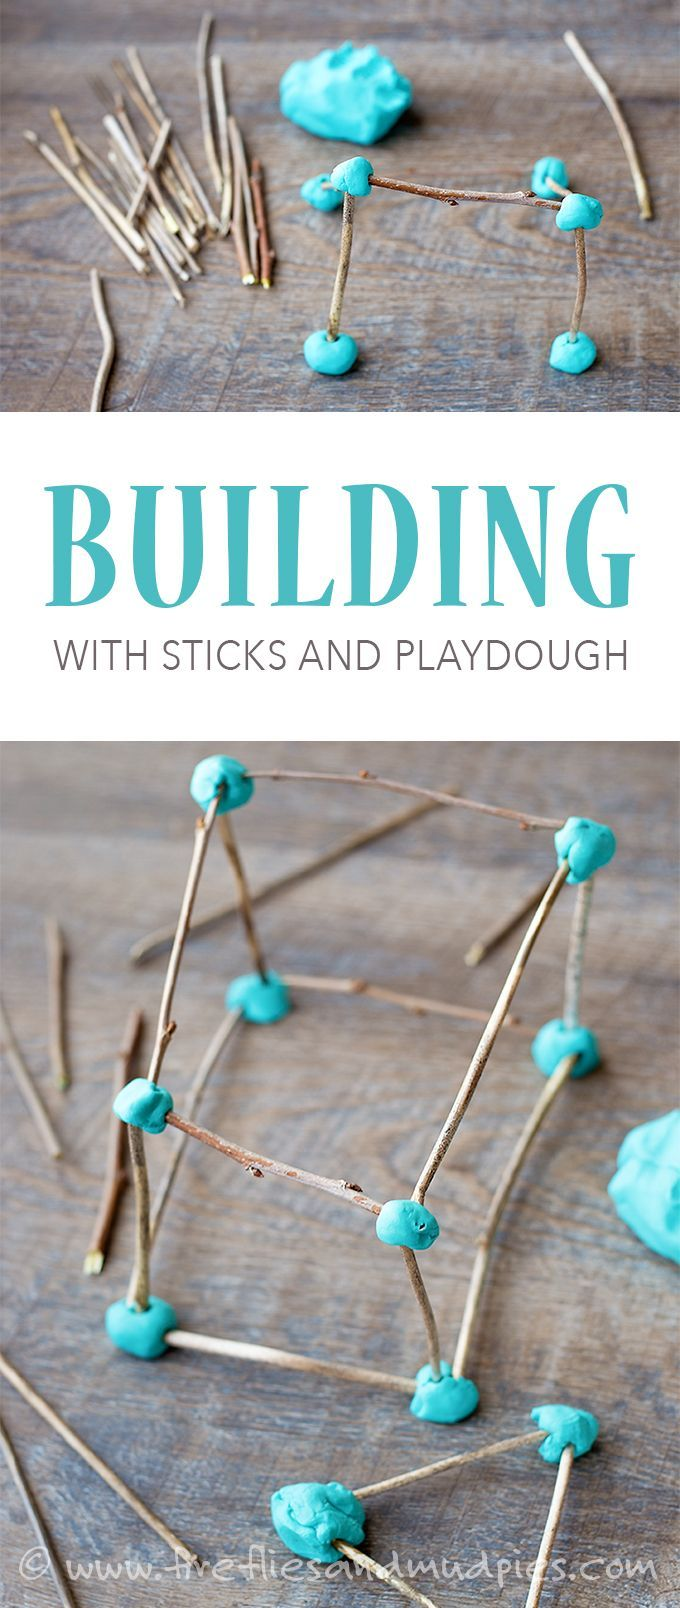 Building with sticks and playdough - easy to prepare engineering project for kids!